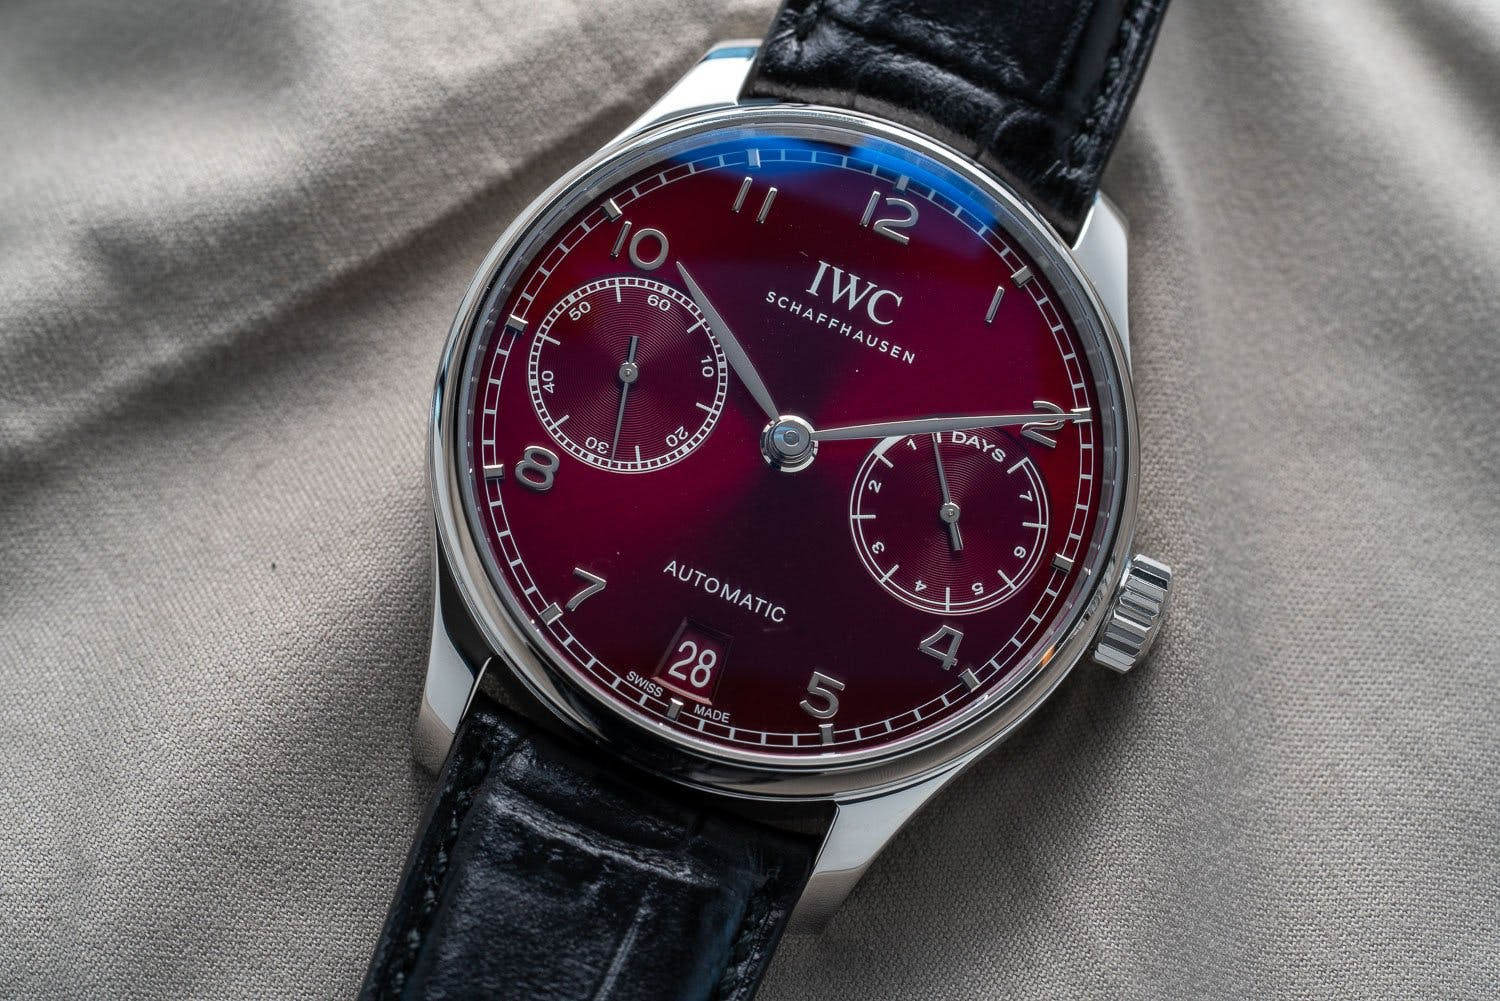 IWC Portugieser Automatic with two subdials, Ref. IW500714, Image: Bert Buijsrogge